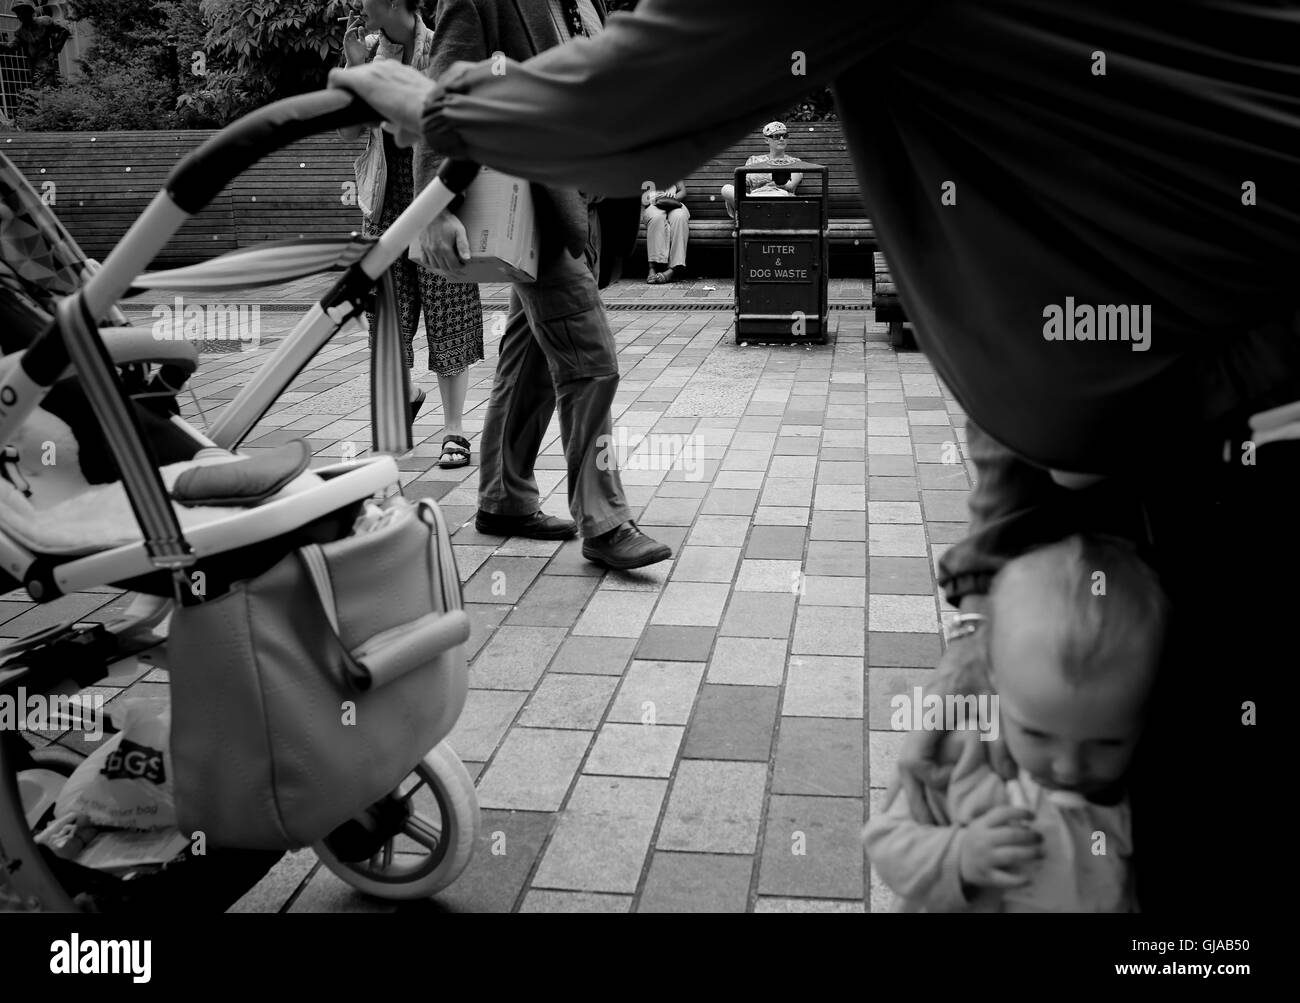 Busy street and man holding walking  toddler close to his legs as though protecting her, keeping her close and safe - Stock Image